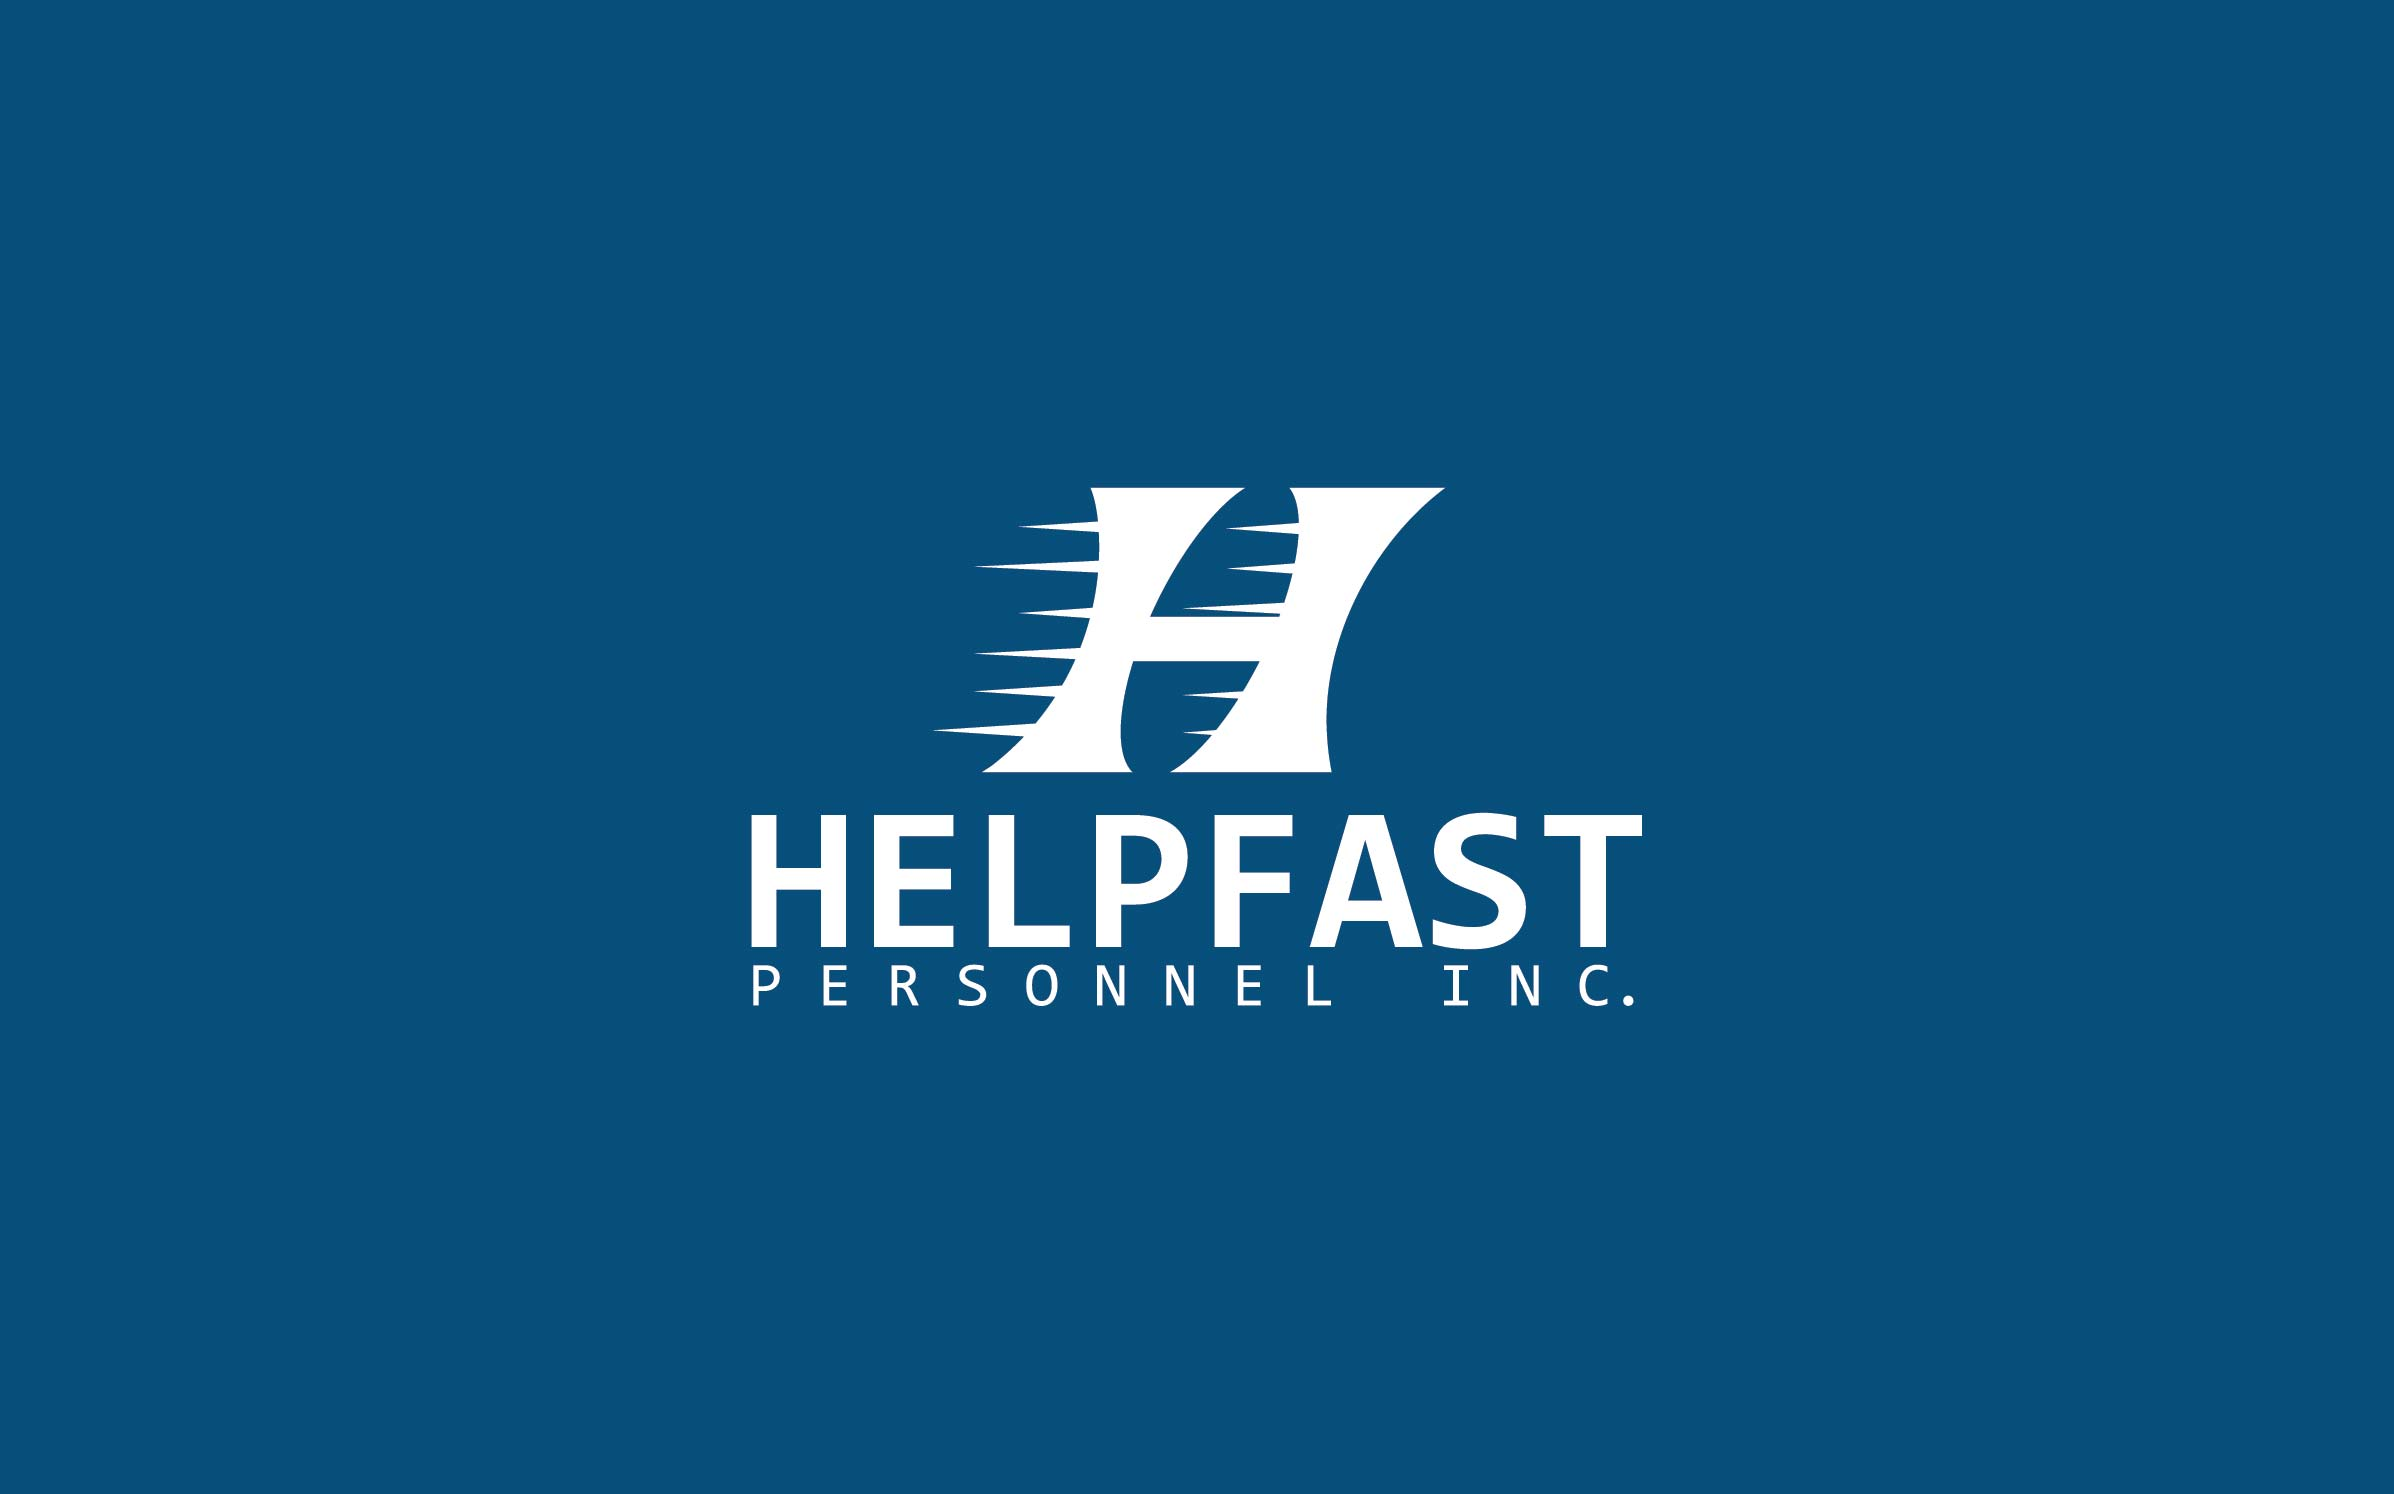 Jourjious Design - HelpFast logo.